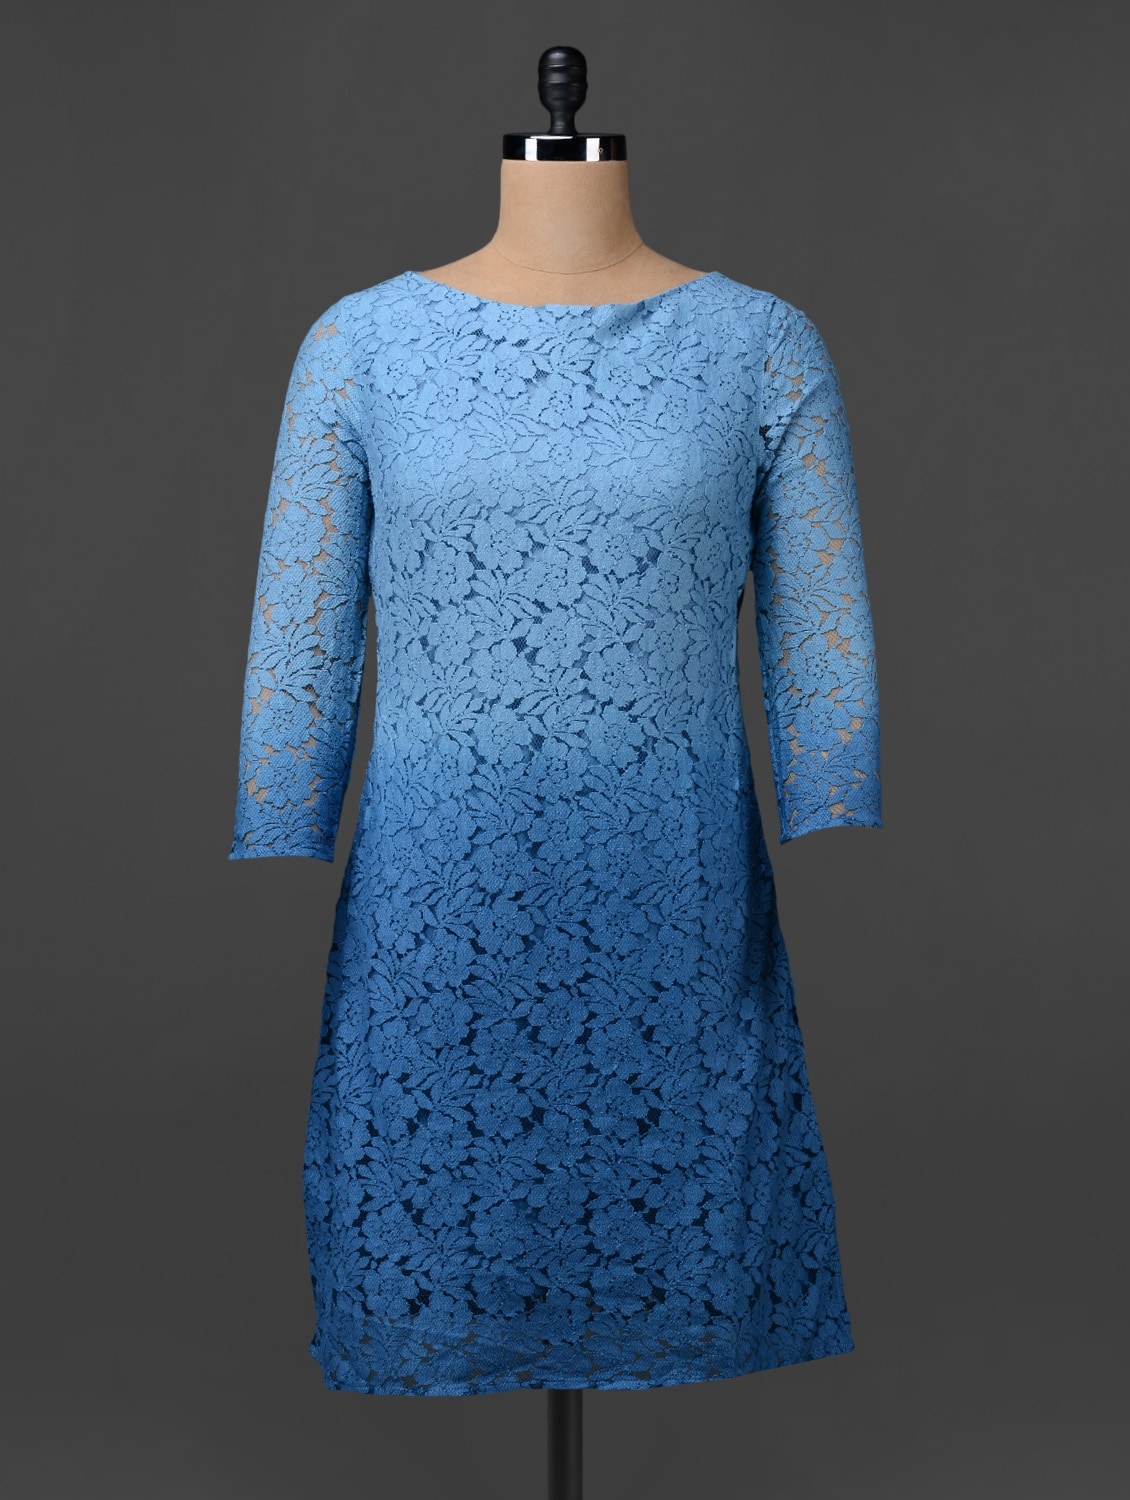 Ombre Cotton Lace Dress - Colbrii